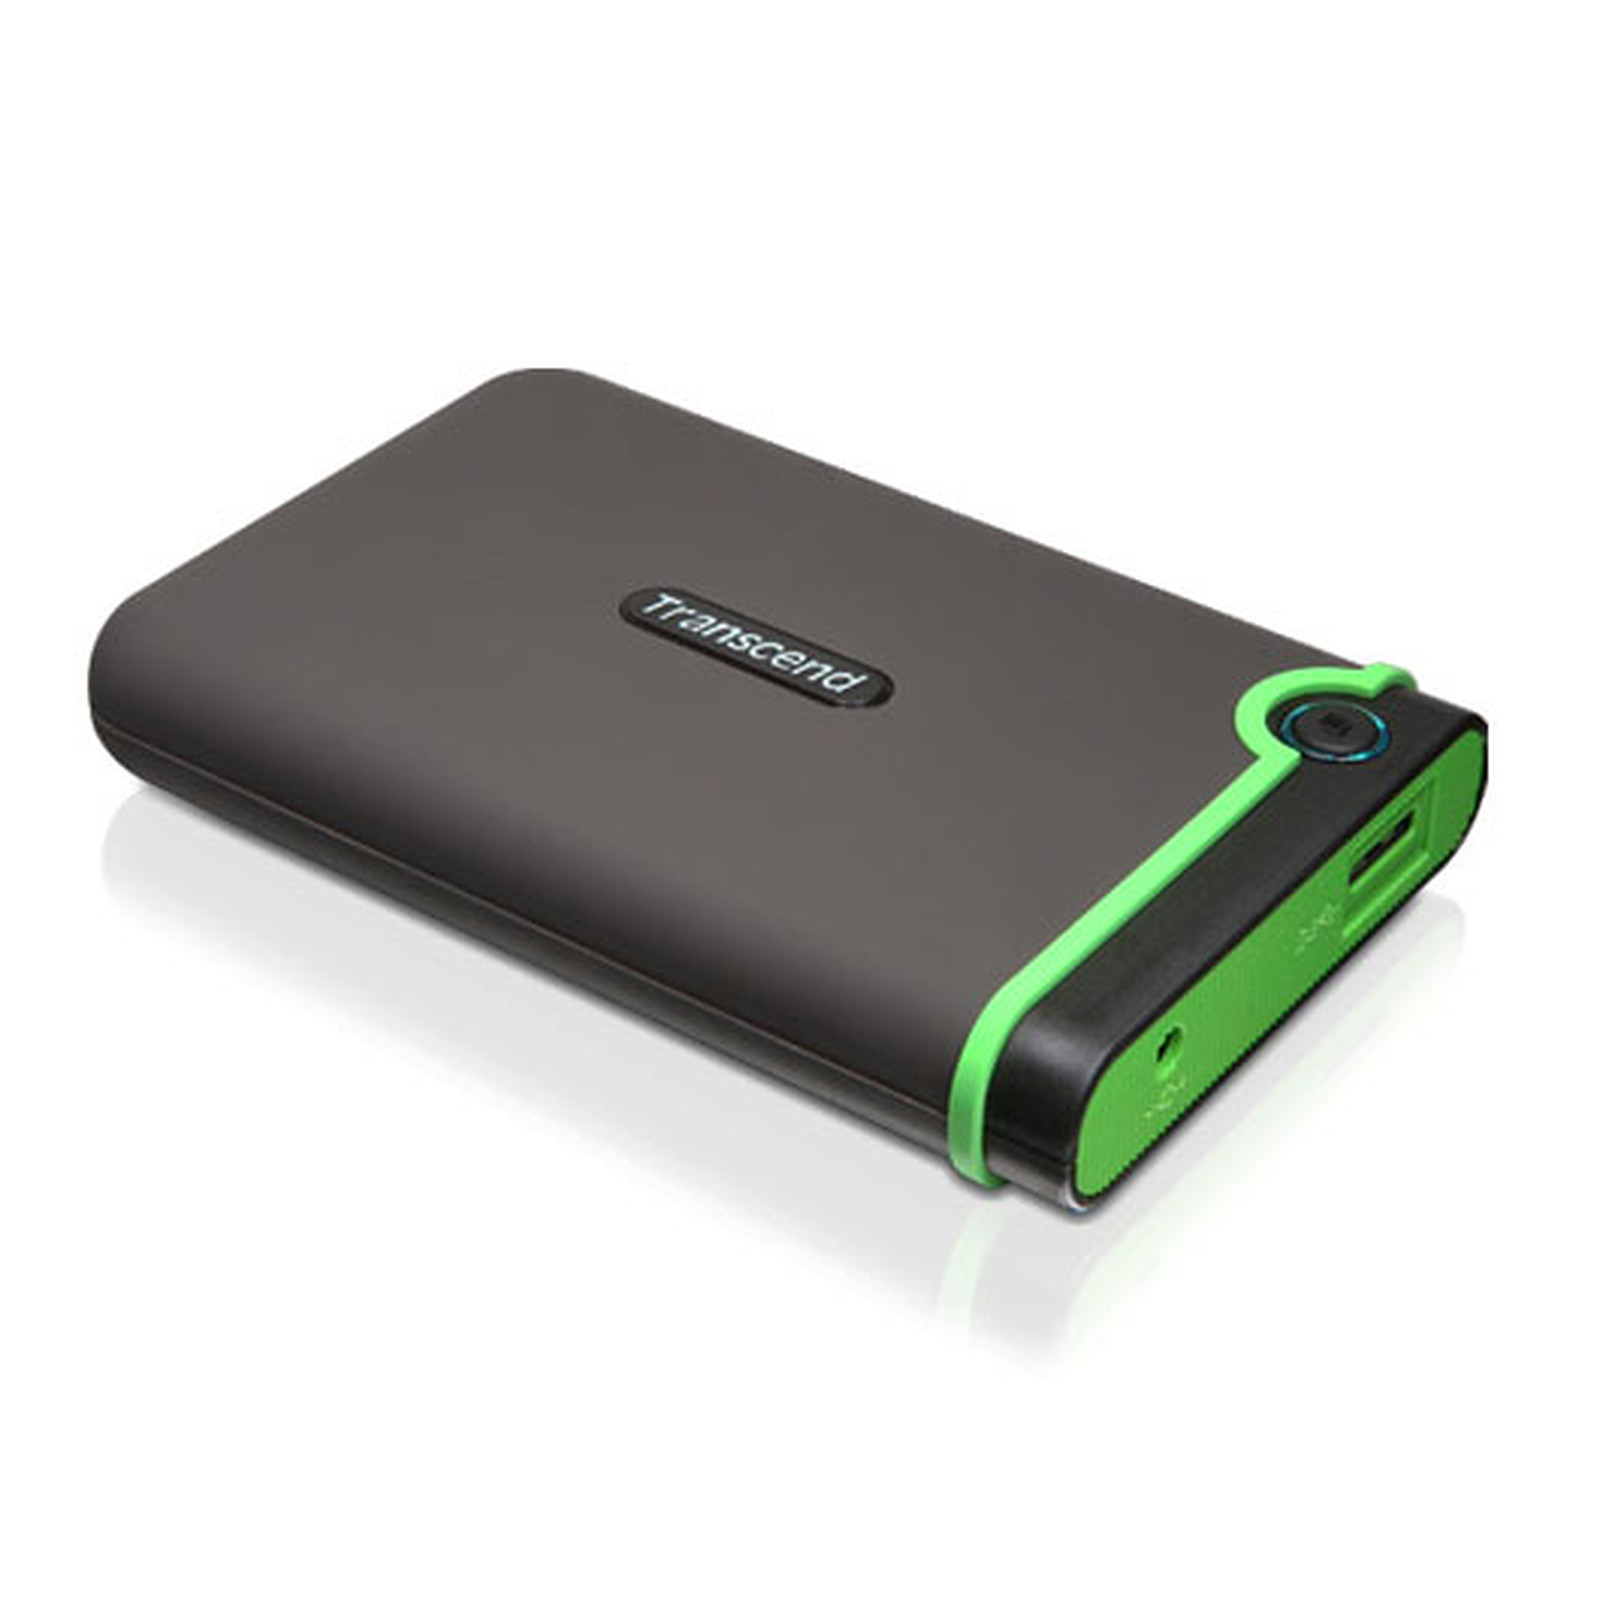 Transcend StoreJet 25M3 1 To (USB 3.0)